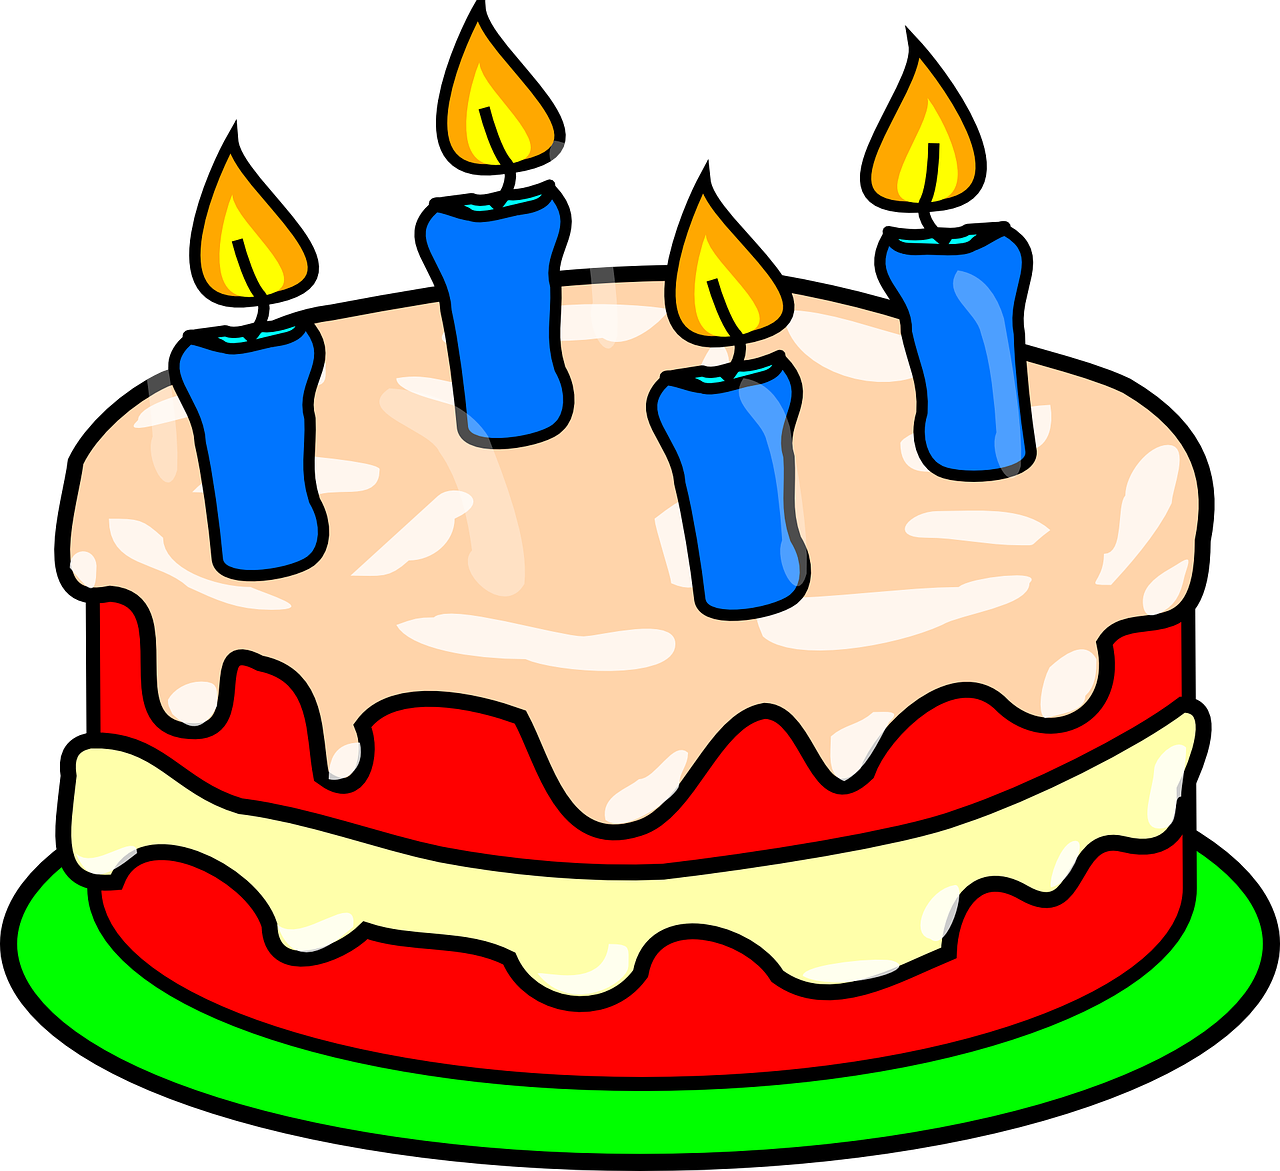 A year of reading. Clipart cake money